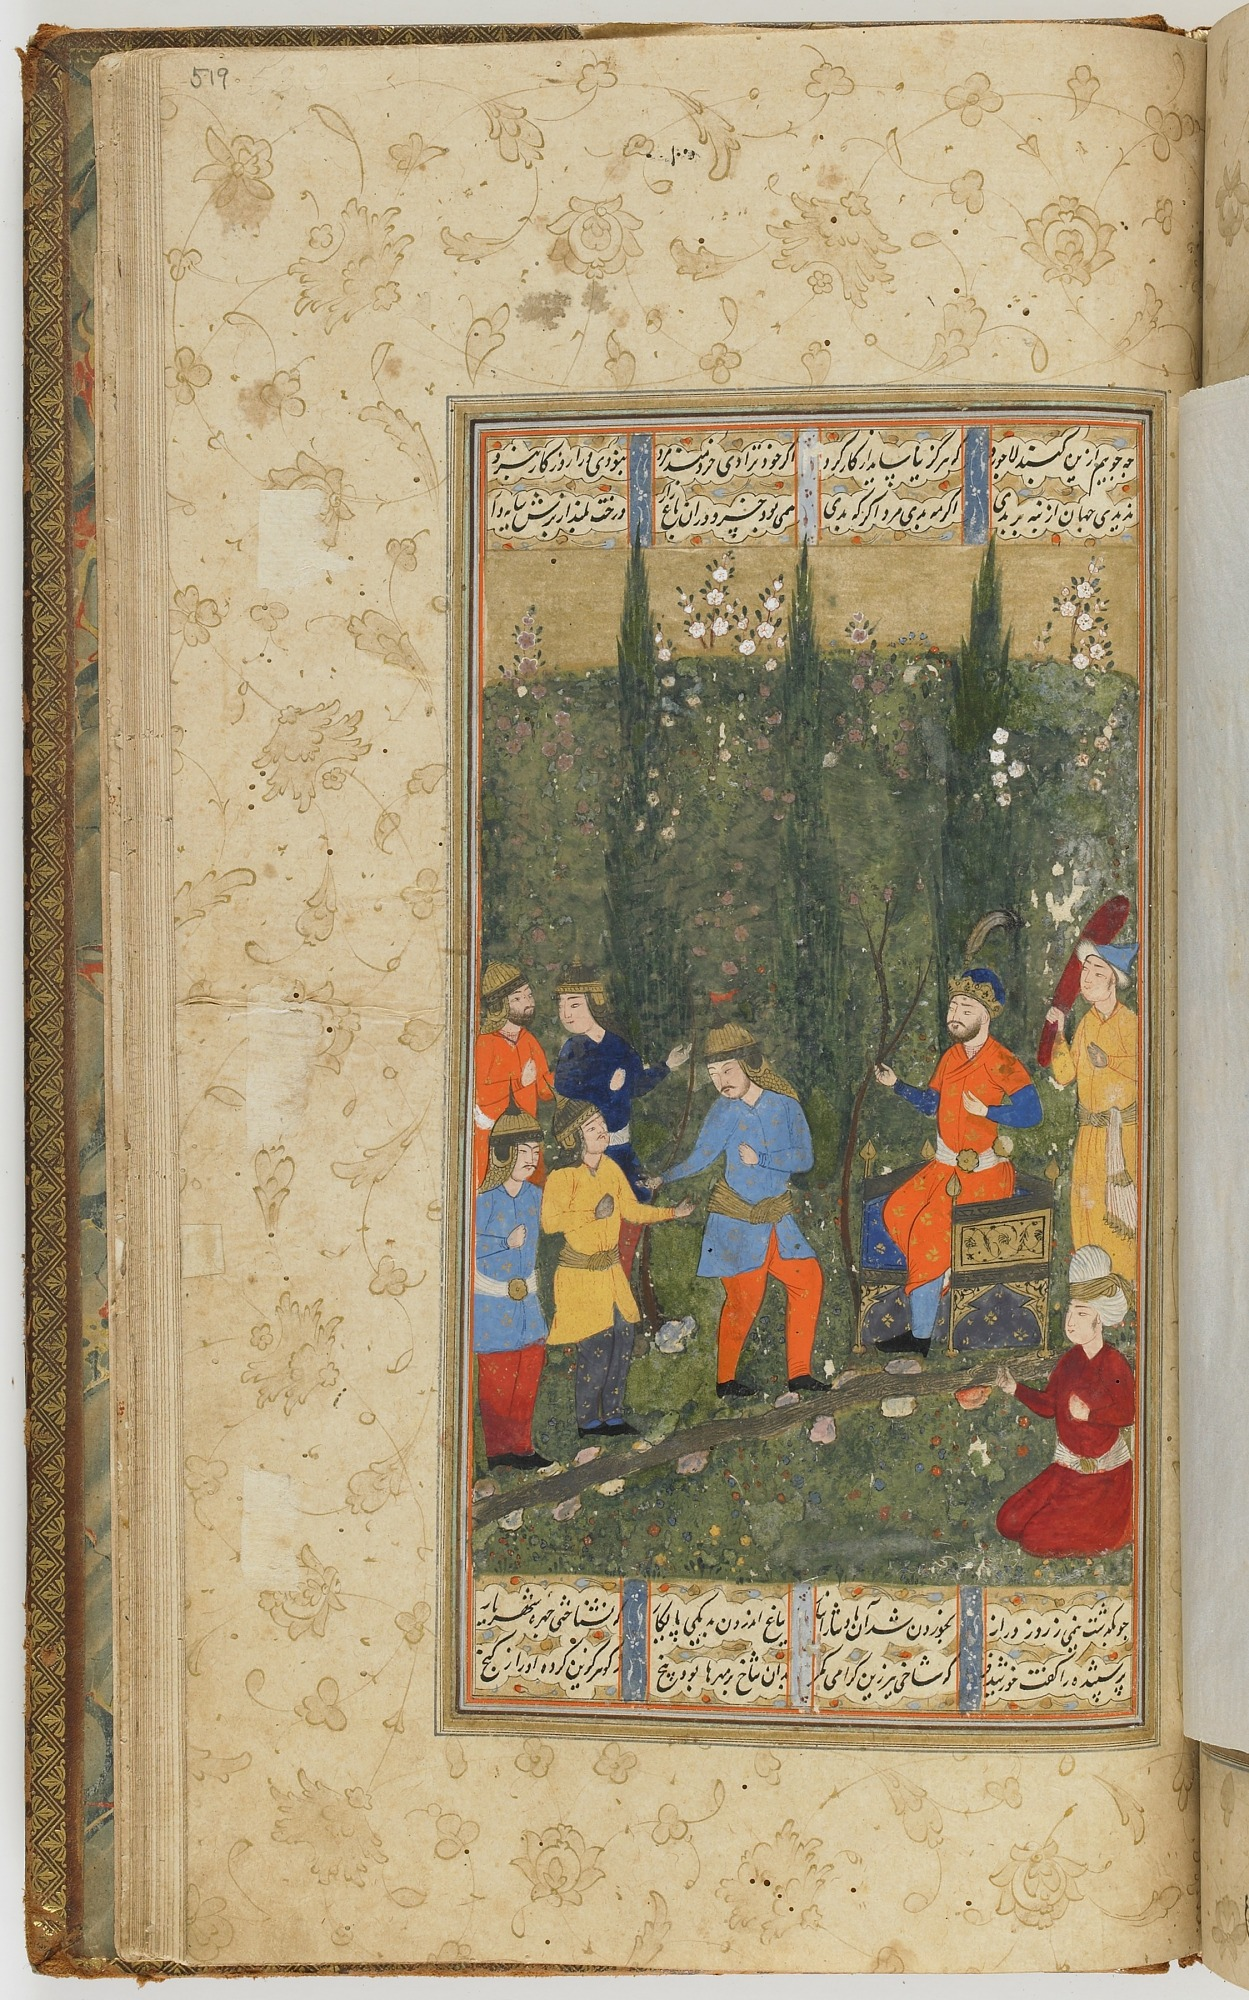 folio 519 recto: The Shahnama (Book of kings) by Firdausi (d. 1020)